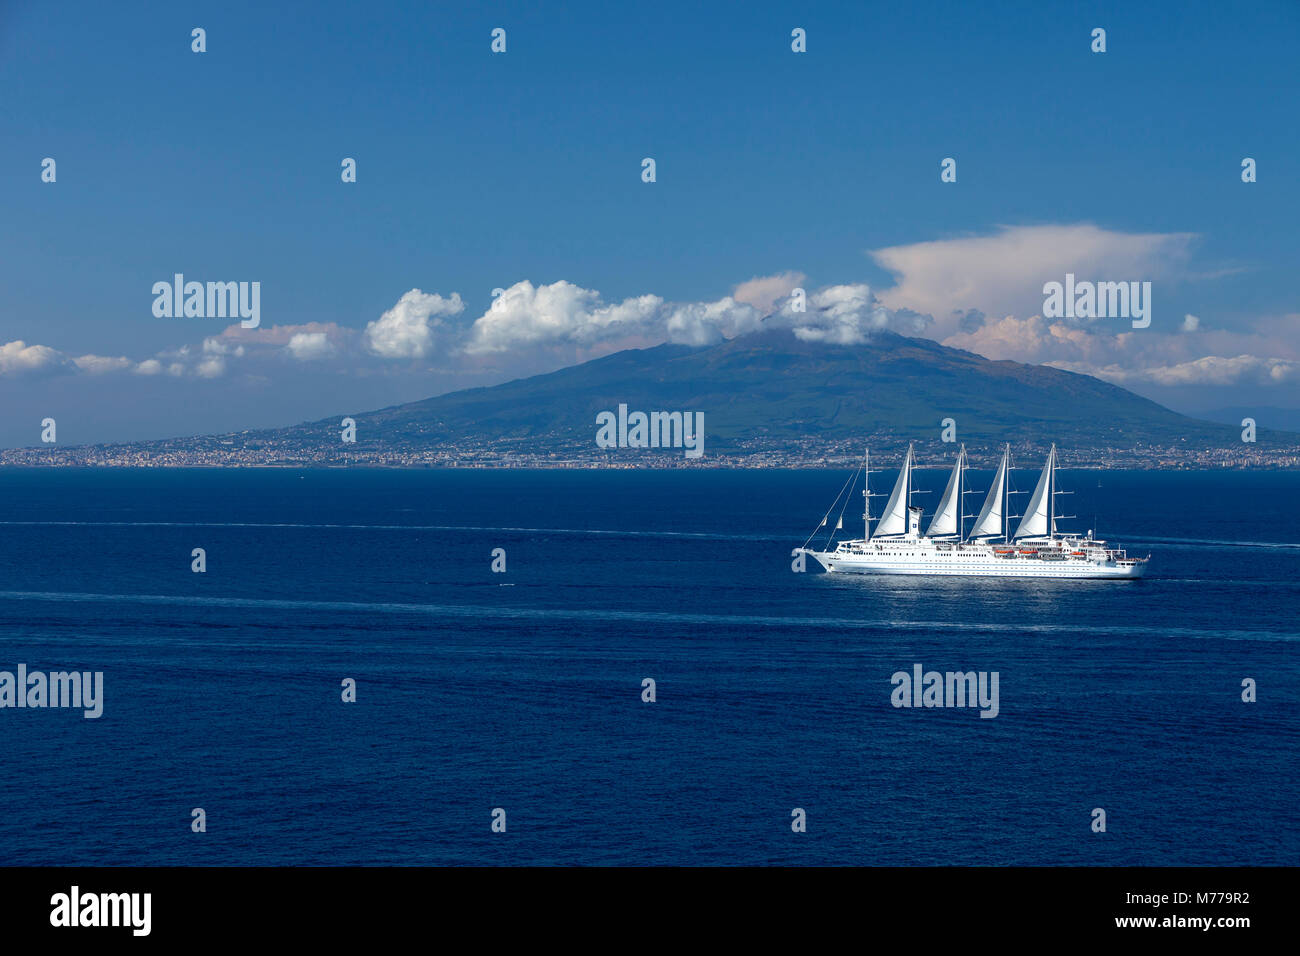 Mount Vesuvius from across the Bay of Naples with Wind Surf cruise ship in foreground, Campania, Italy, Europe - Stock Image